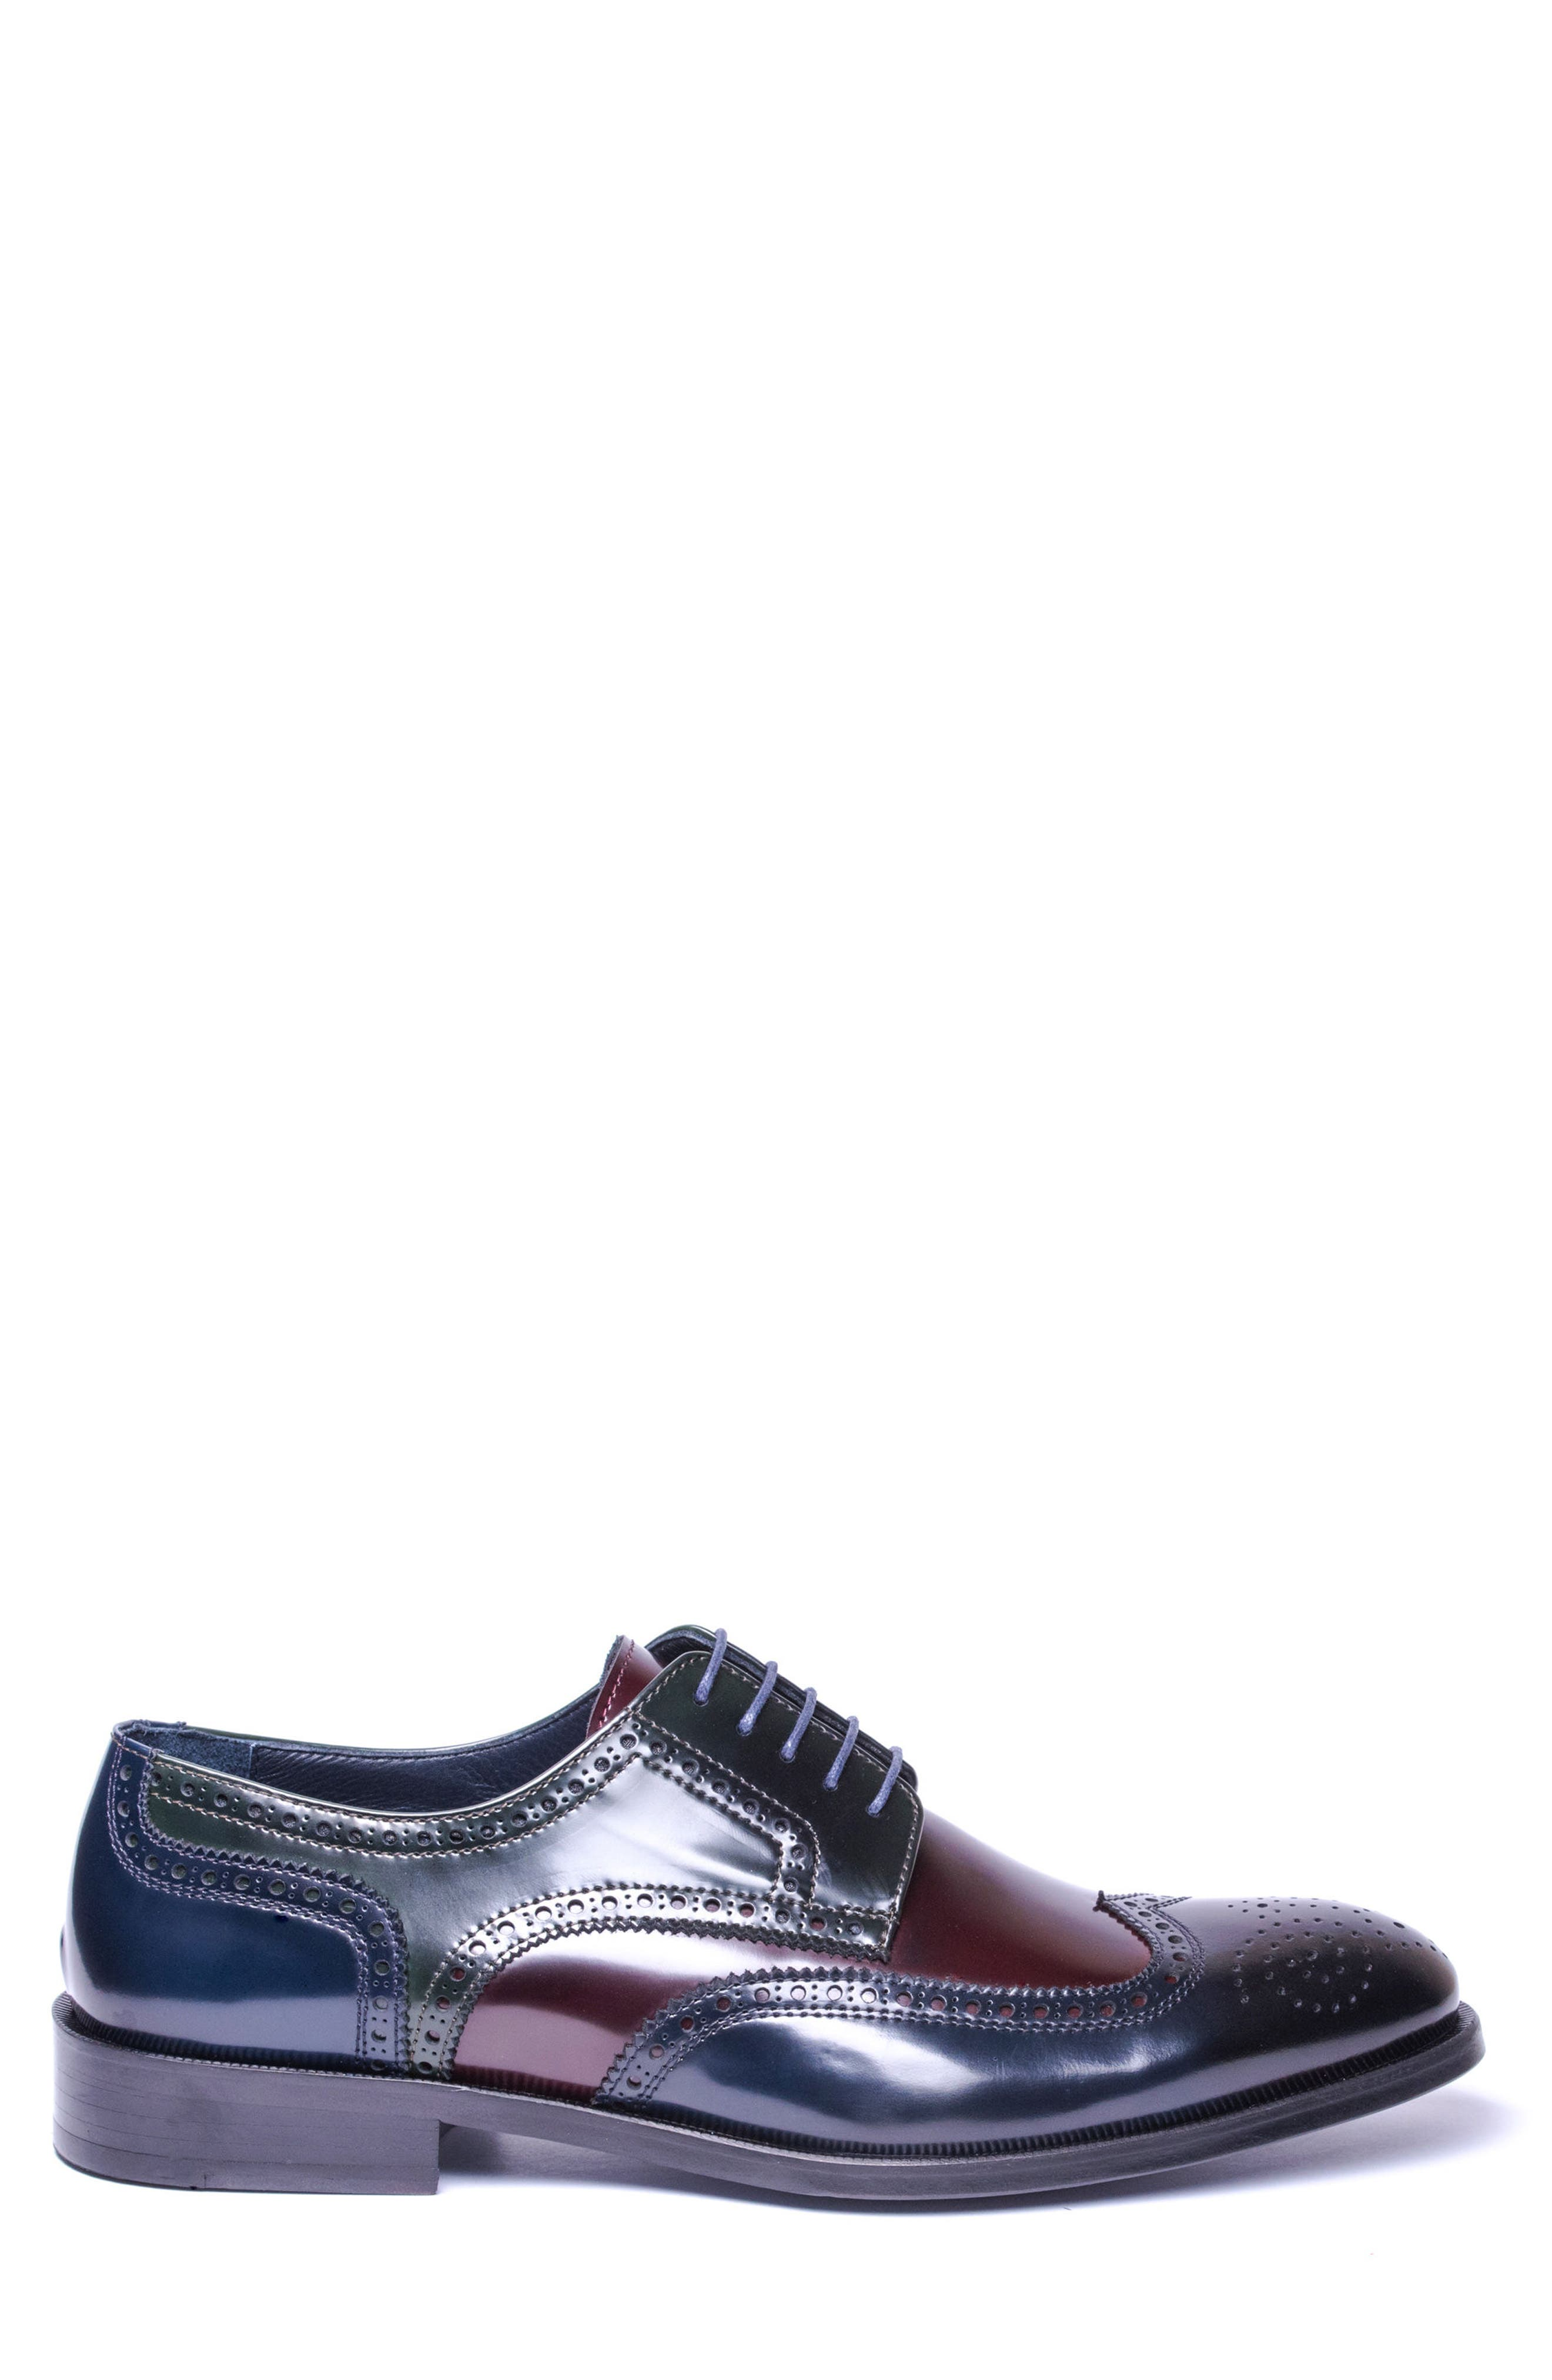 Bryce Wingtip Derby,                             Alternate thumbnail 3, color,                             BROWN/ BLUE LEATHER